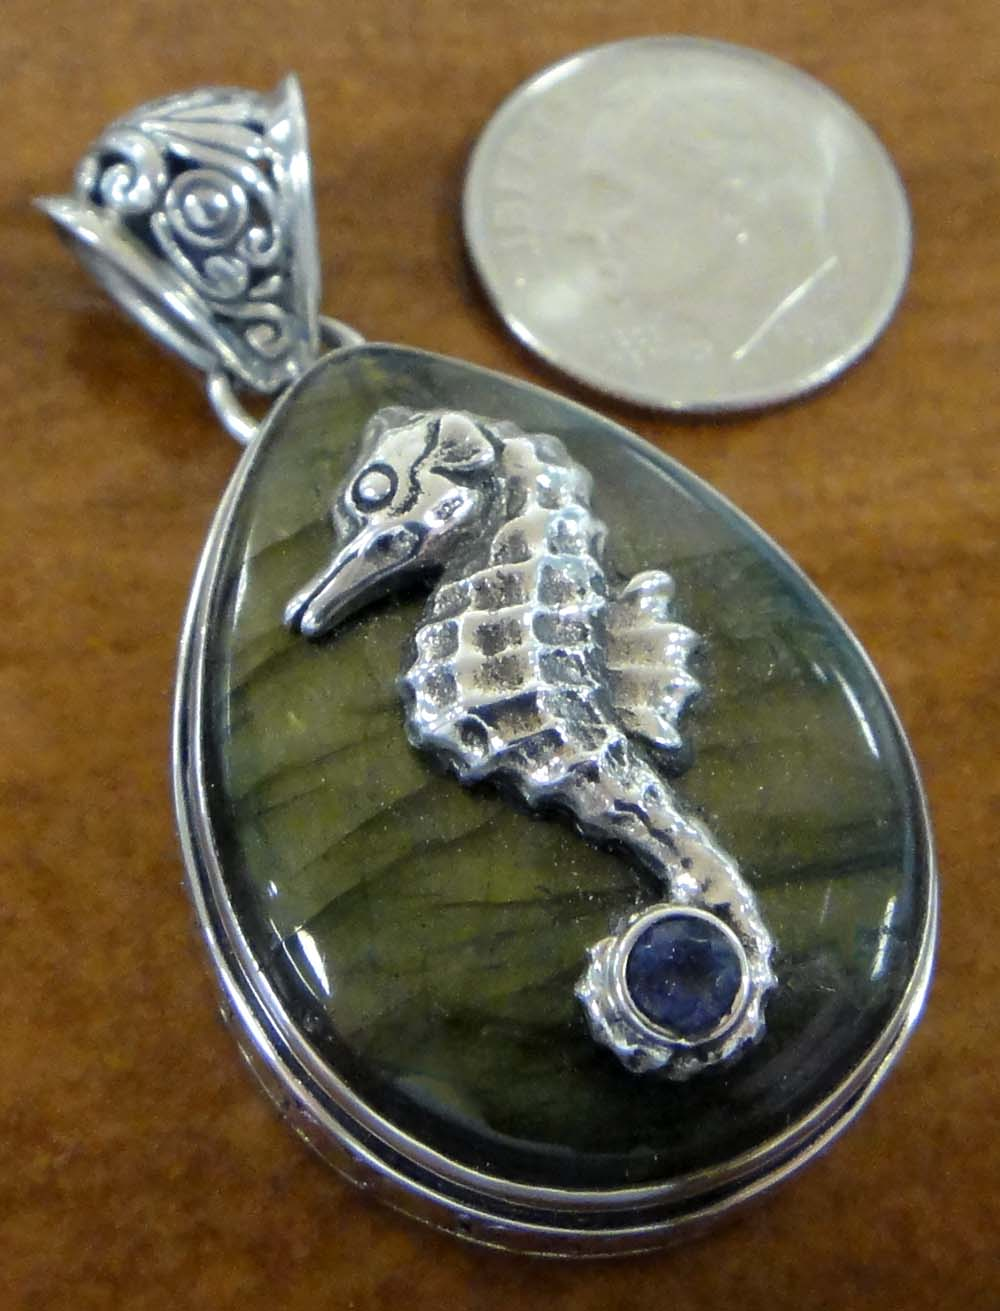 labradorite and iolite seahorse sterling silver pendant with dime for scale